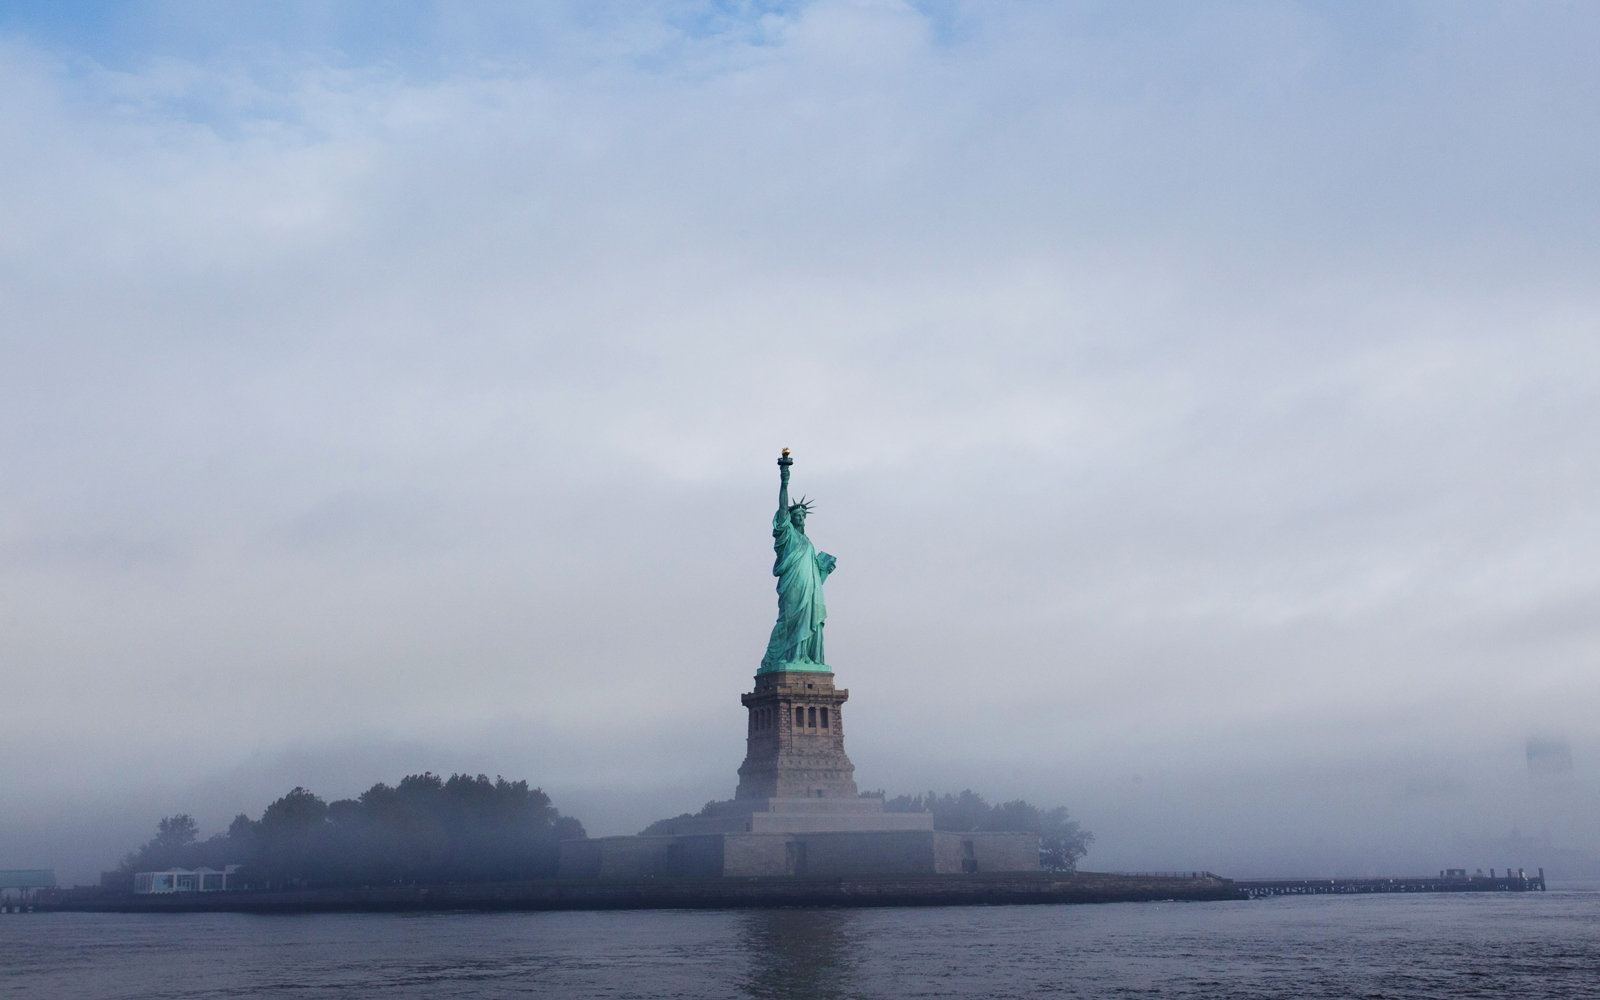 Conspiracy Theories About Why the Statue of Liberty Went Dark